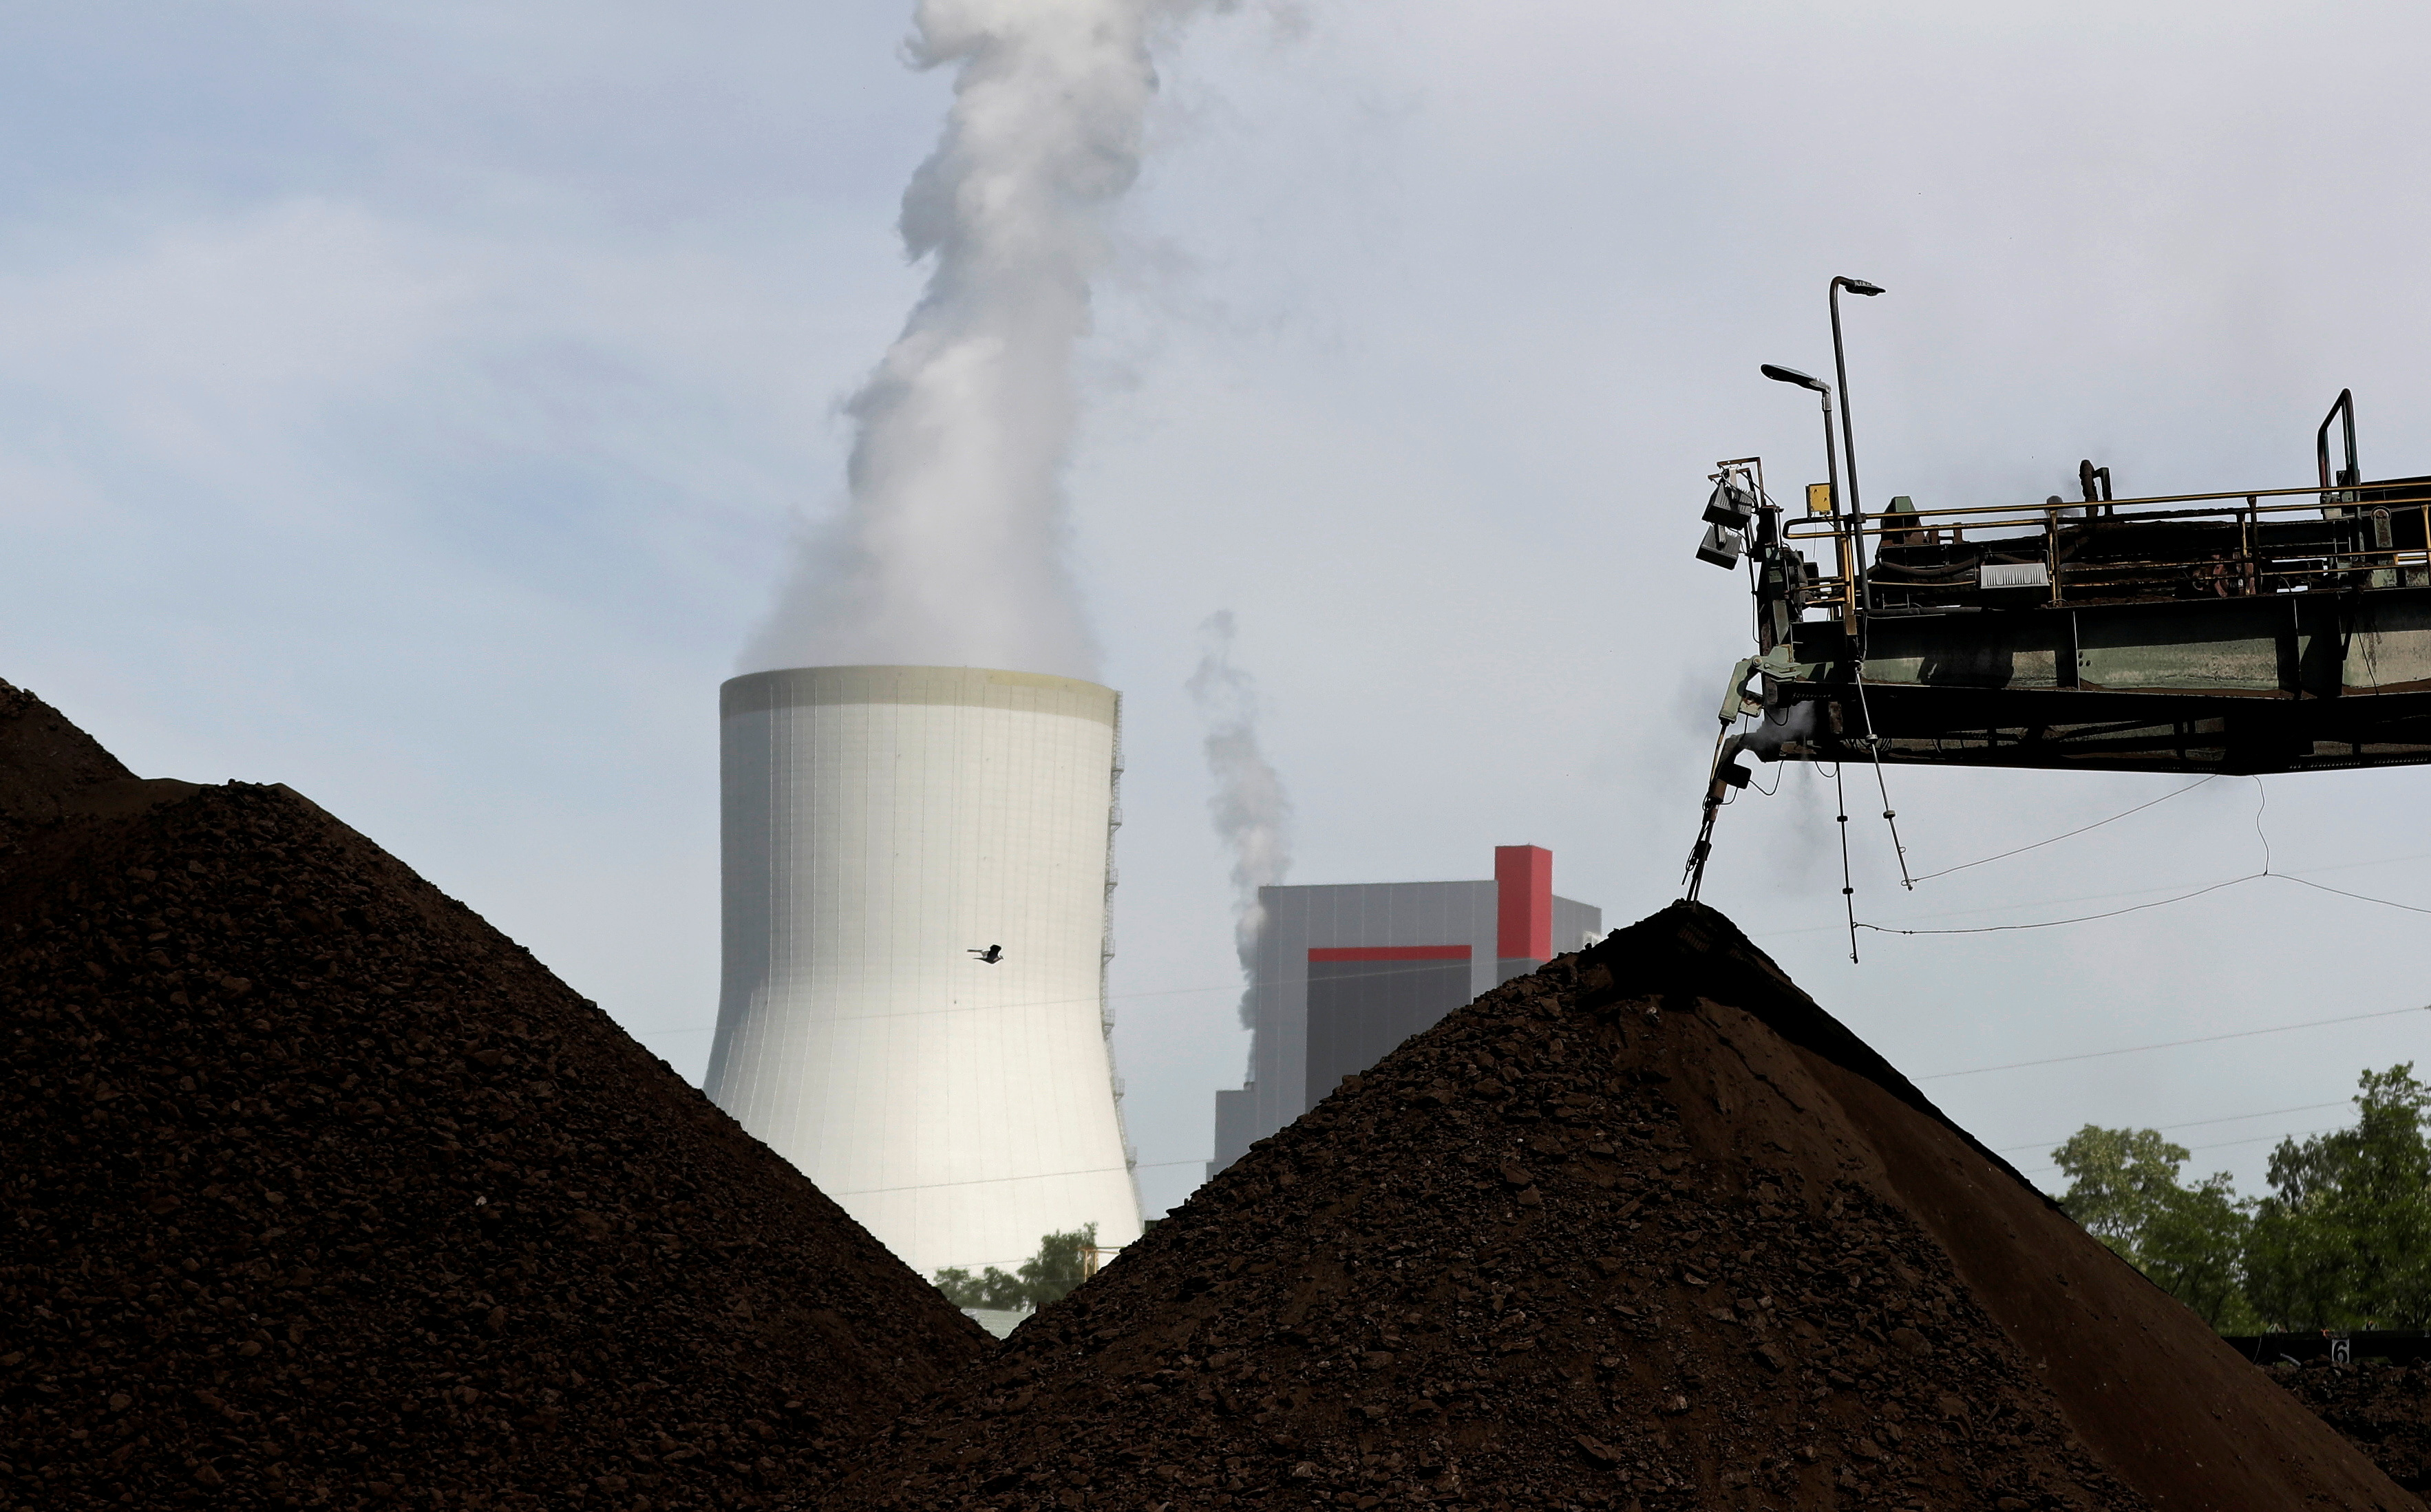 A cooling tower from the Turow coal-fired power plant is seen near the Turow open-pit coal mine operated by the company PGE in Bogatynia, Poland, June 15, 2021. REUTERS/David W Cerny